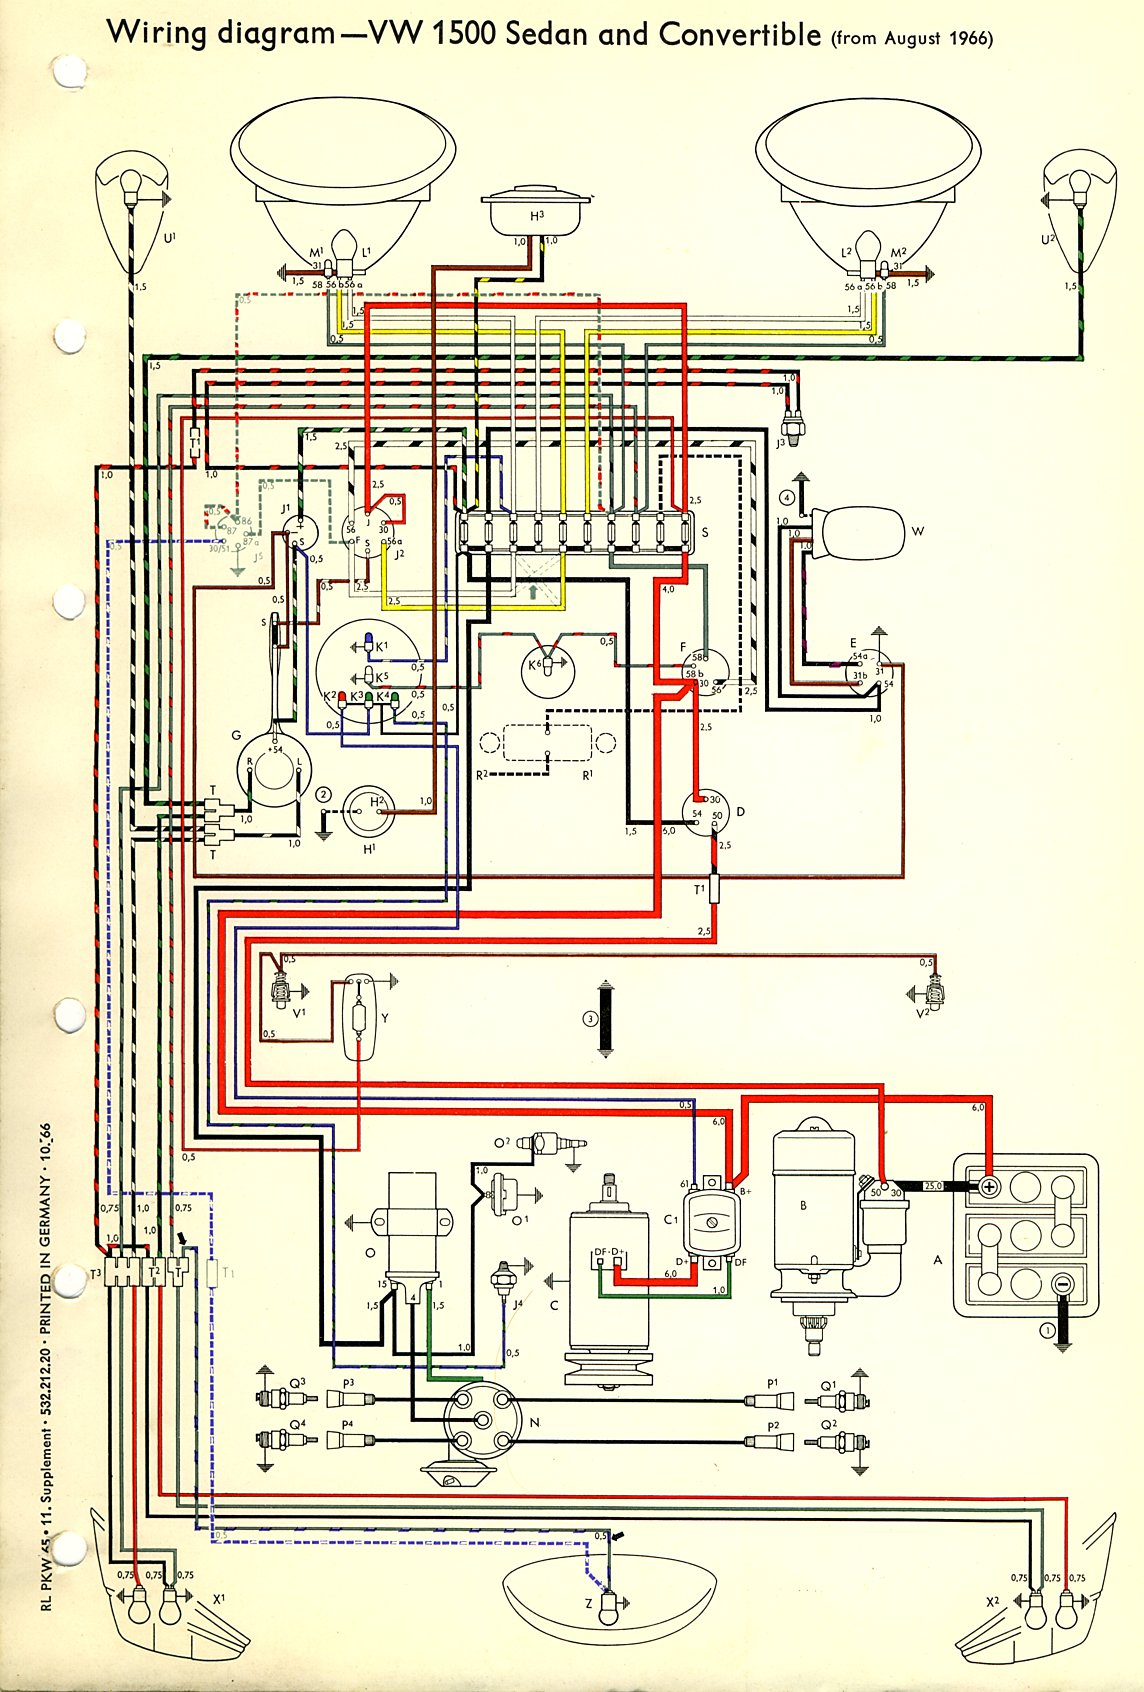 Type 1 Wiring Diagrams 1950 Chevy Interior Diagram